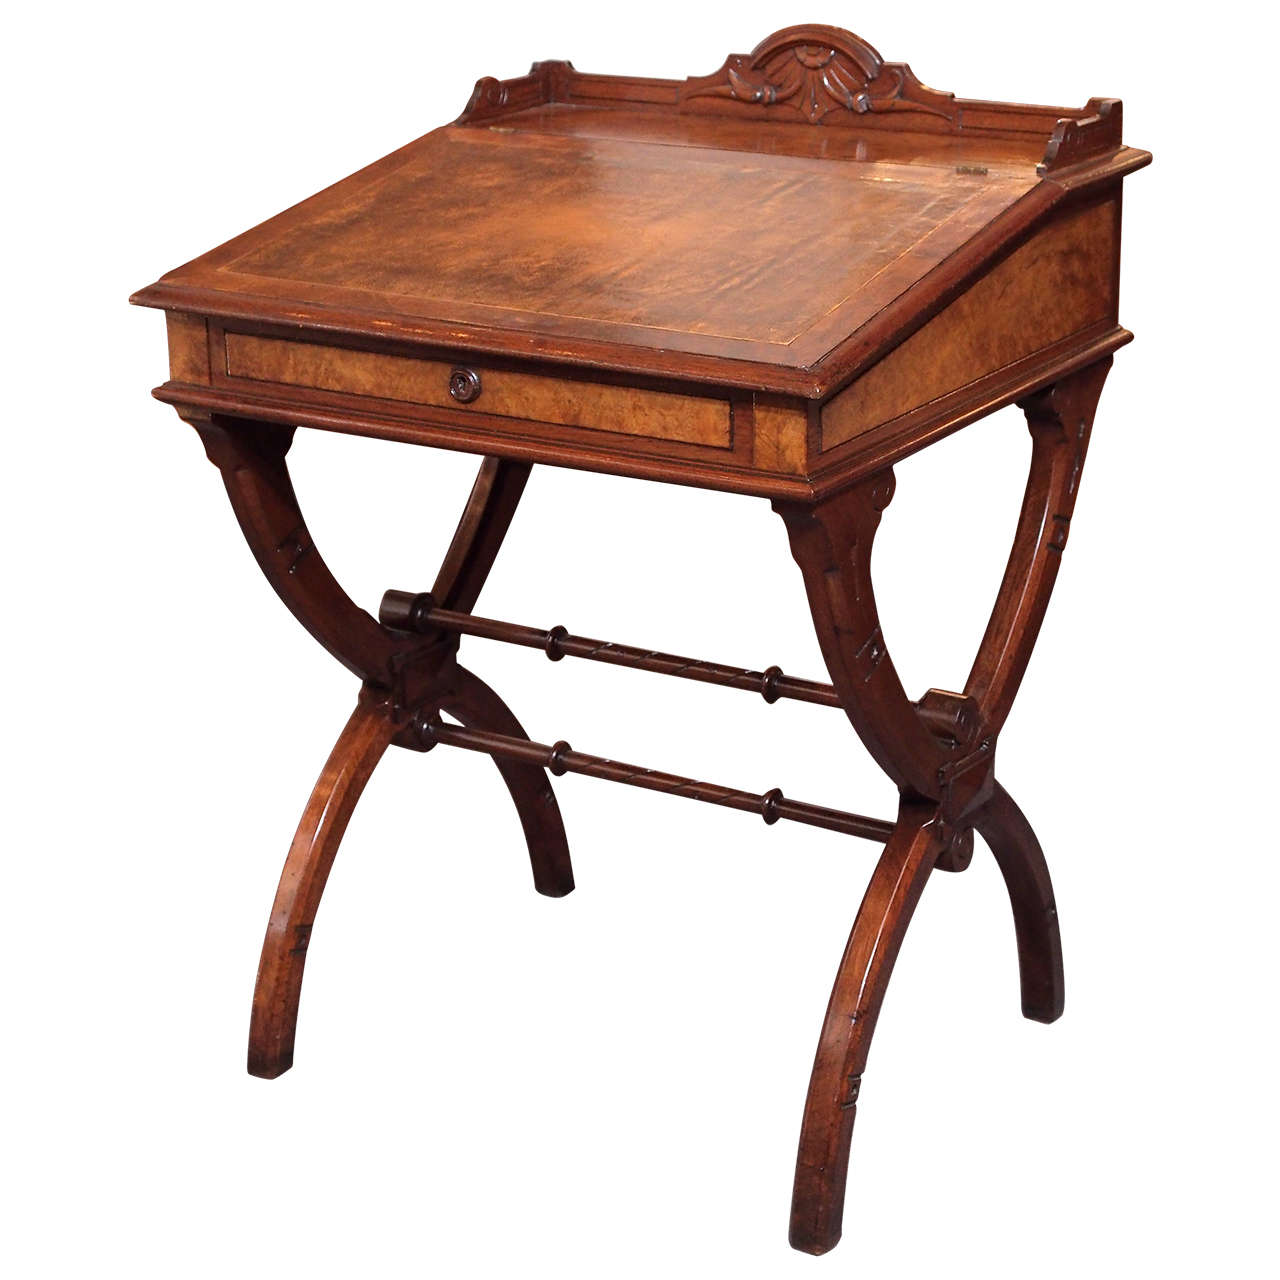 19th Century American Eastlake Davenport Desk, Burled Walnut 1